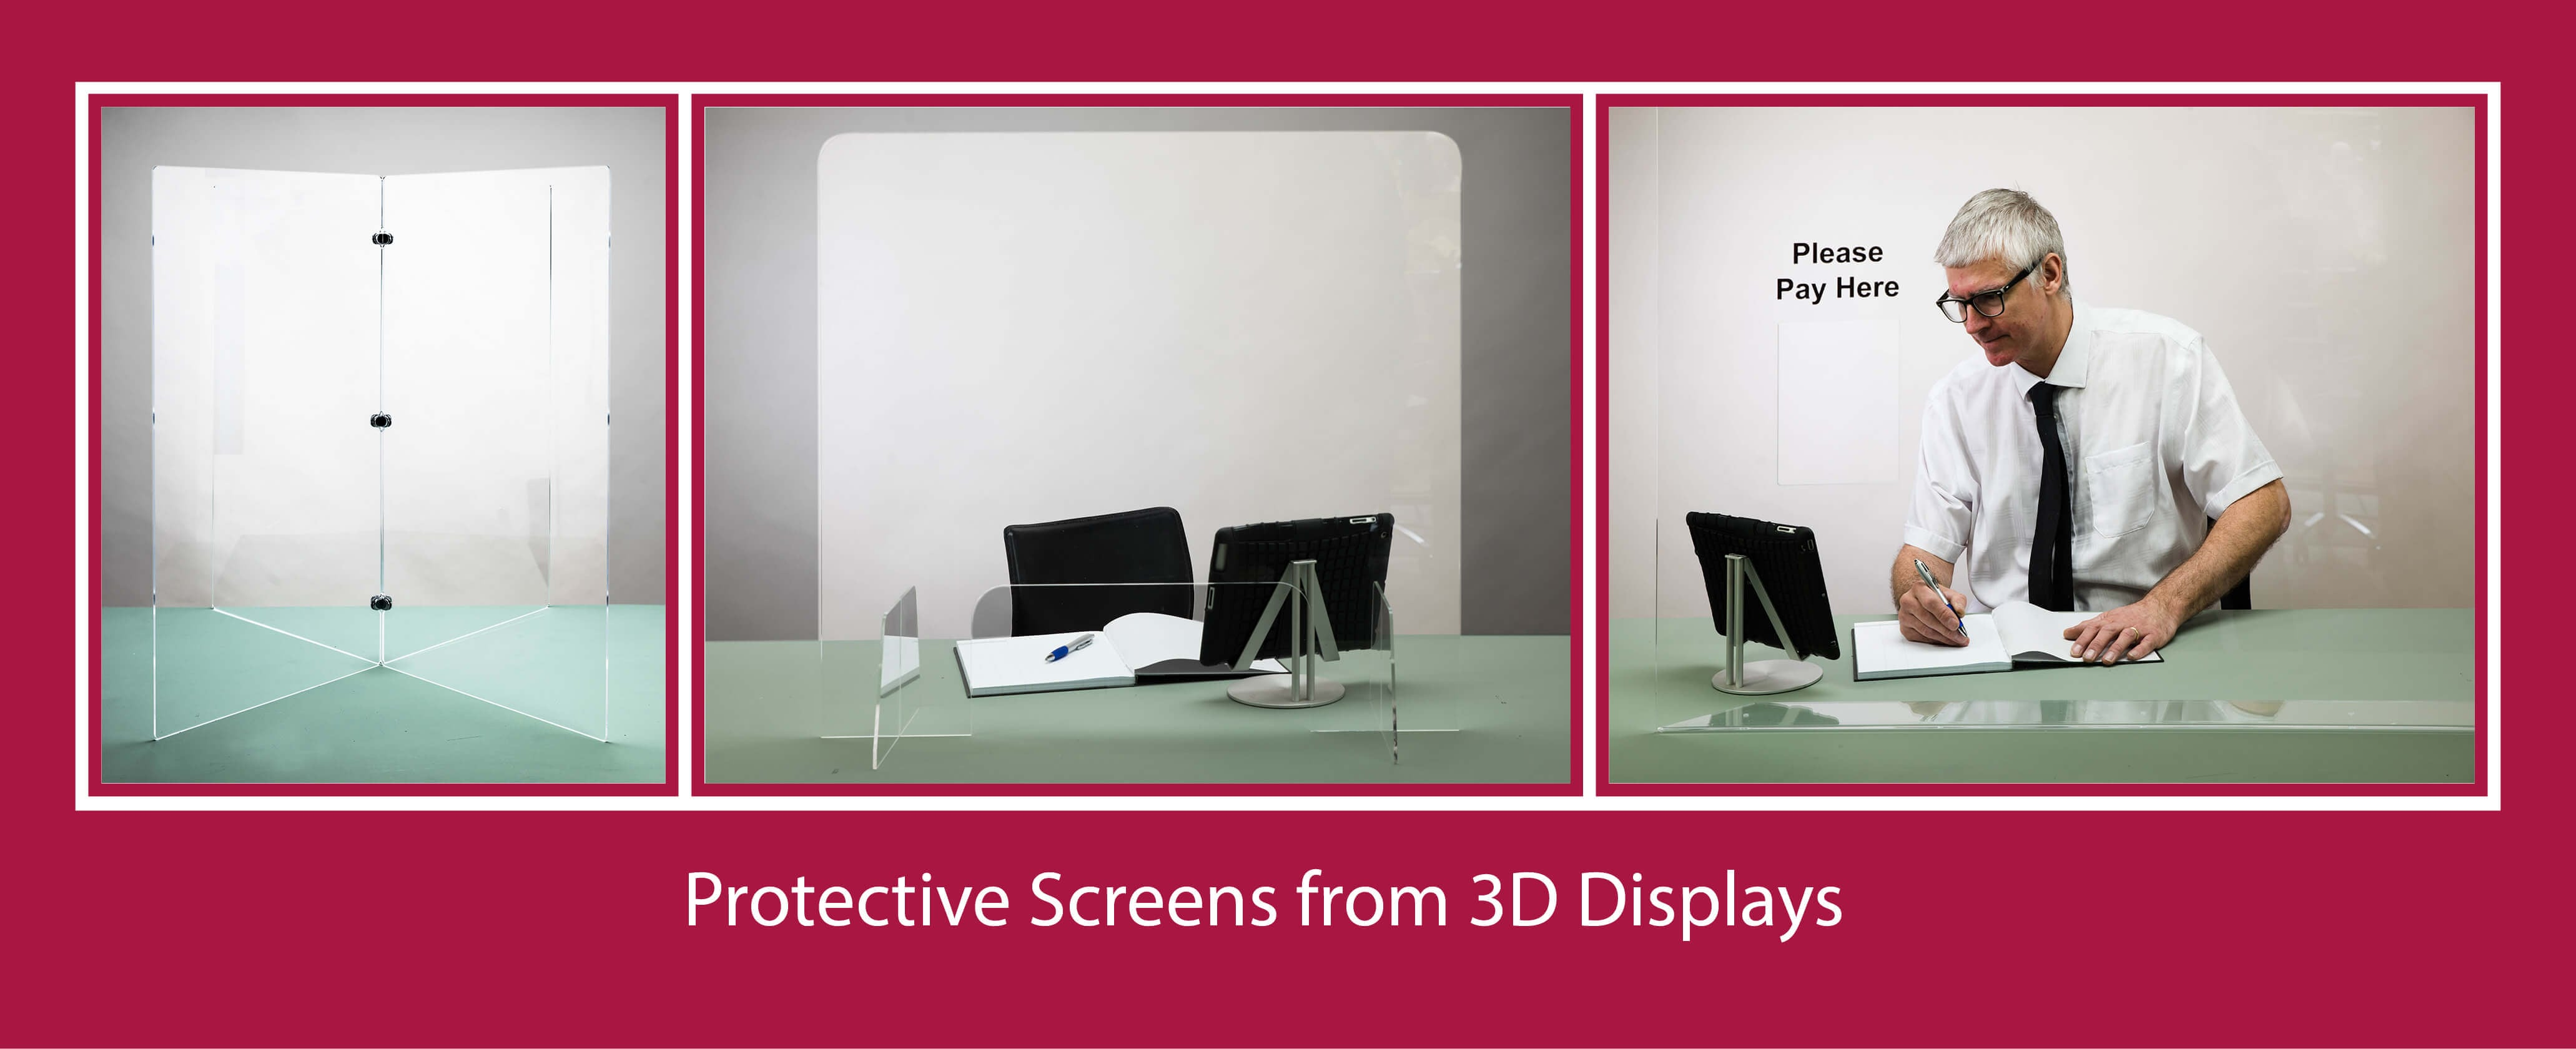 Protective Screens